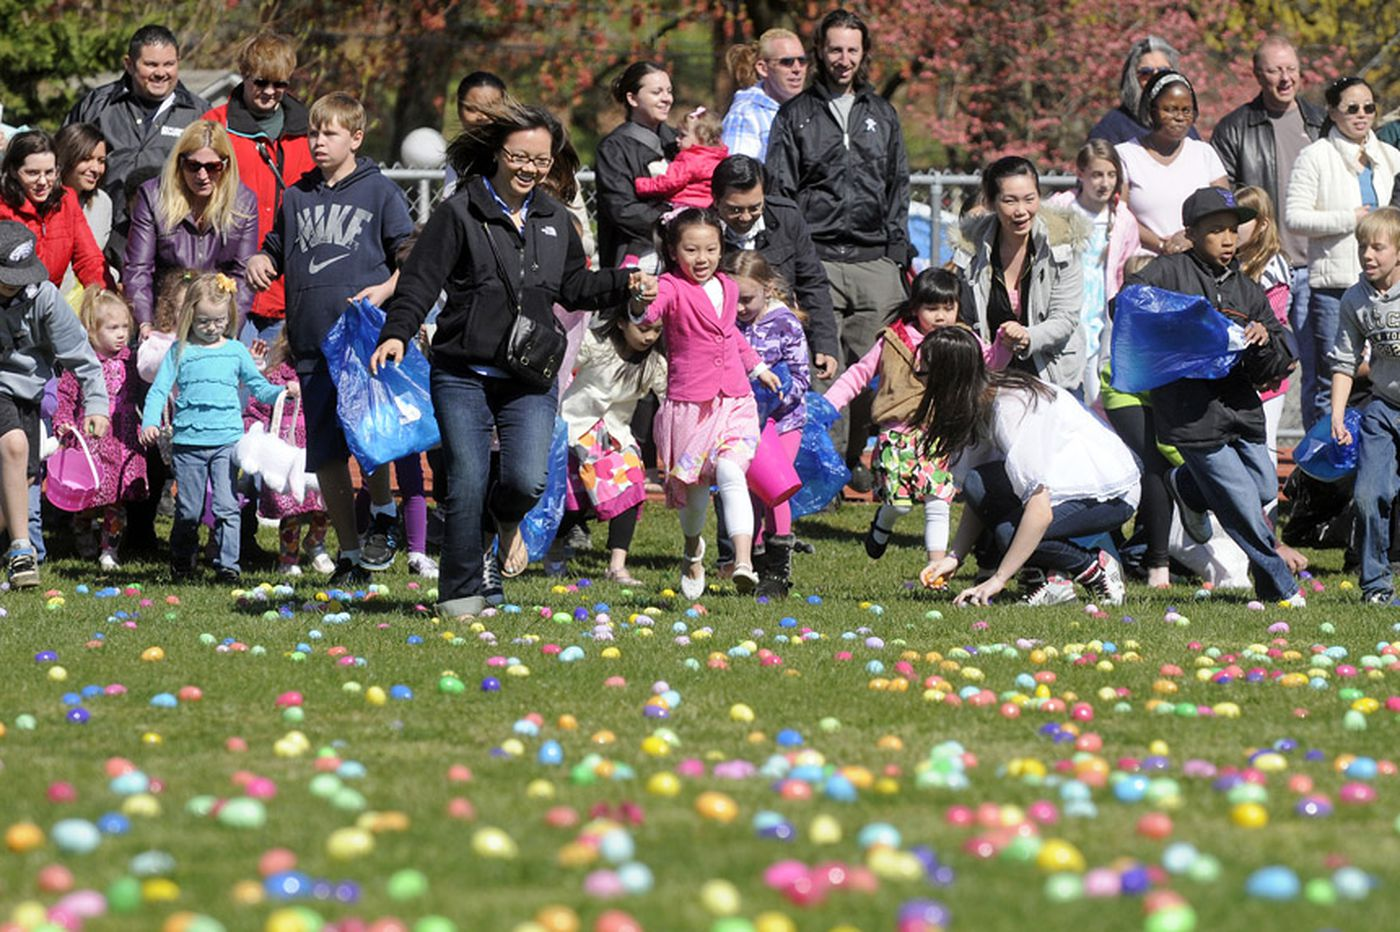 A helicopter will drop 6,000 Easter eggs on Northeast Philly this Saturday